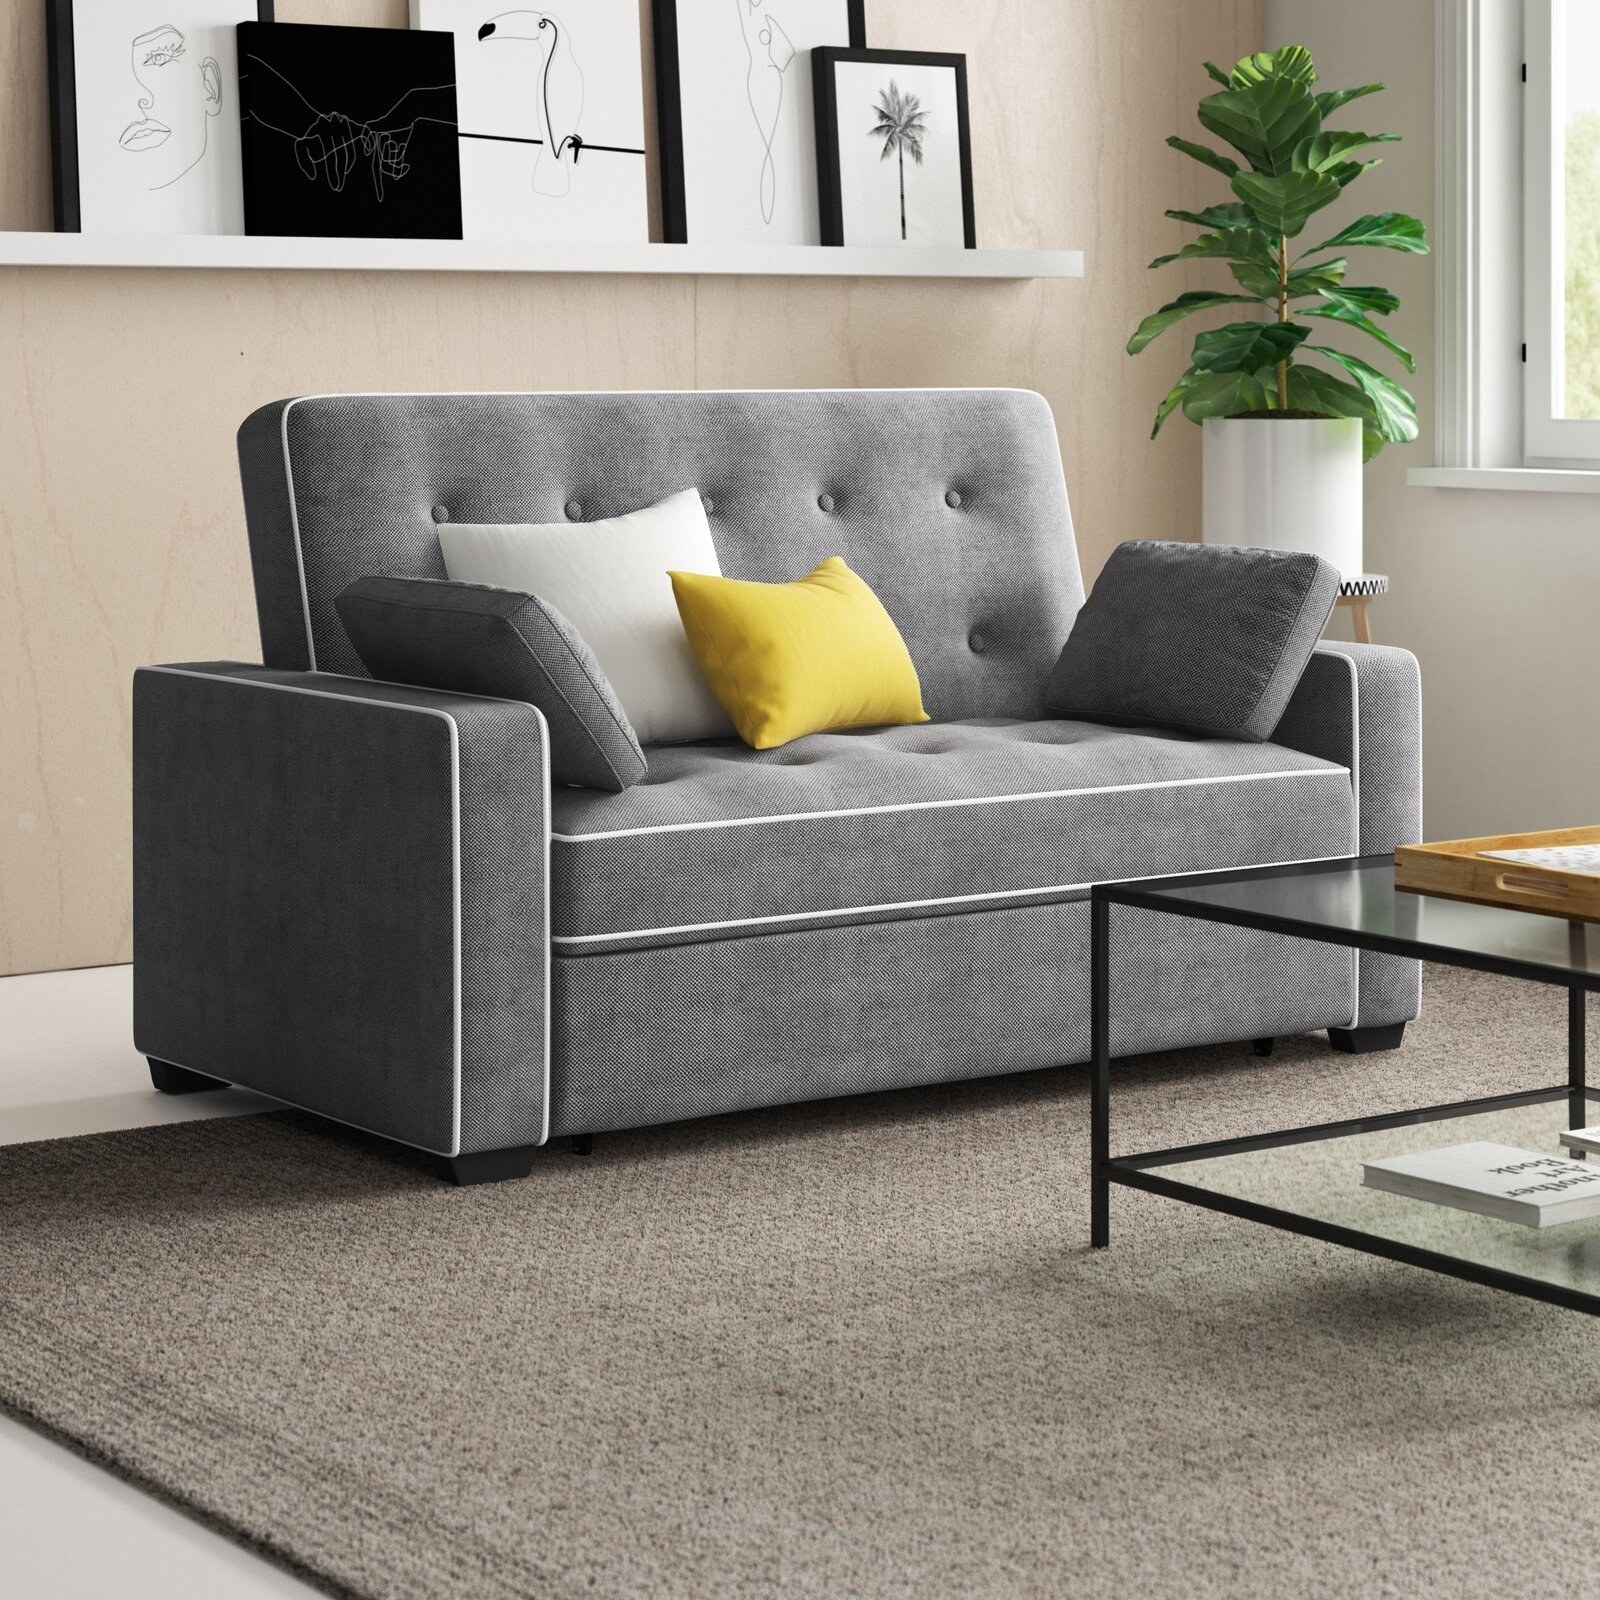 Review photo of the gray microfiber/microsuede futon